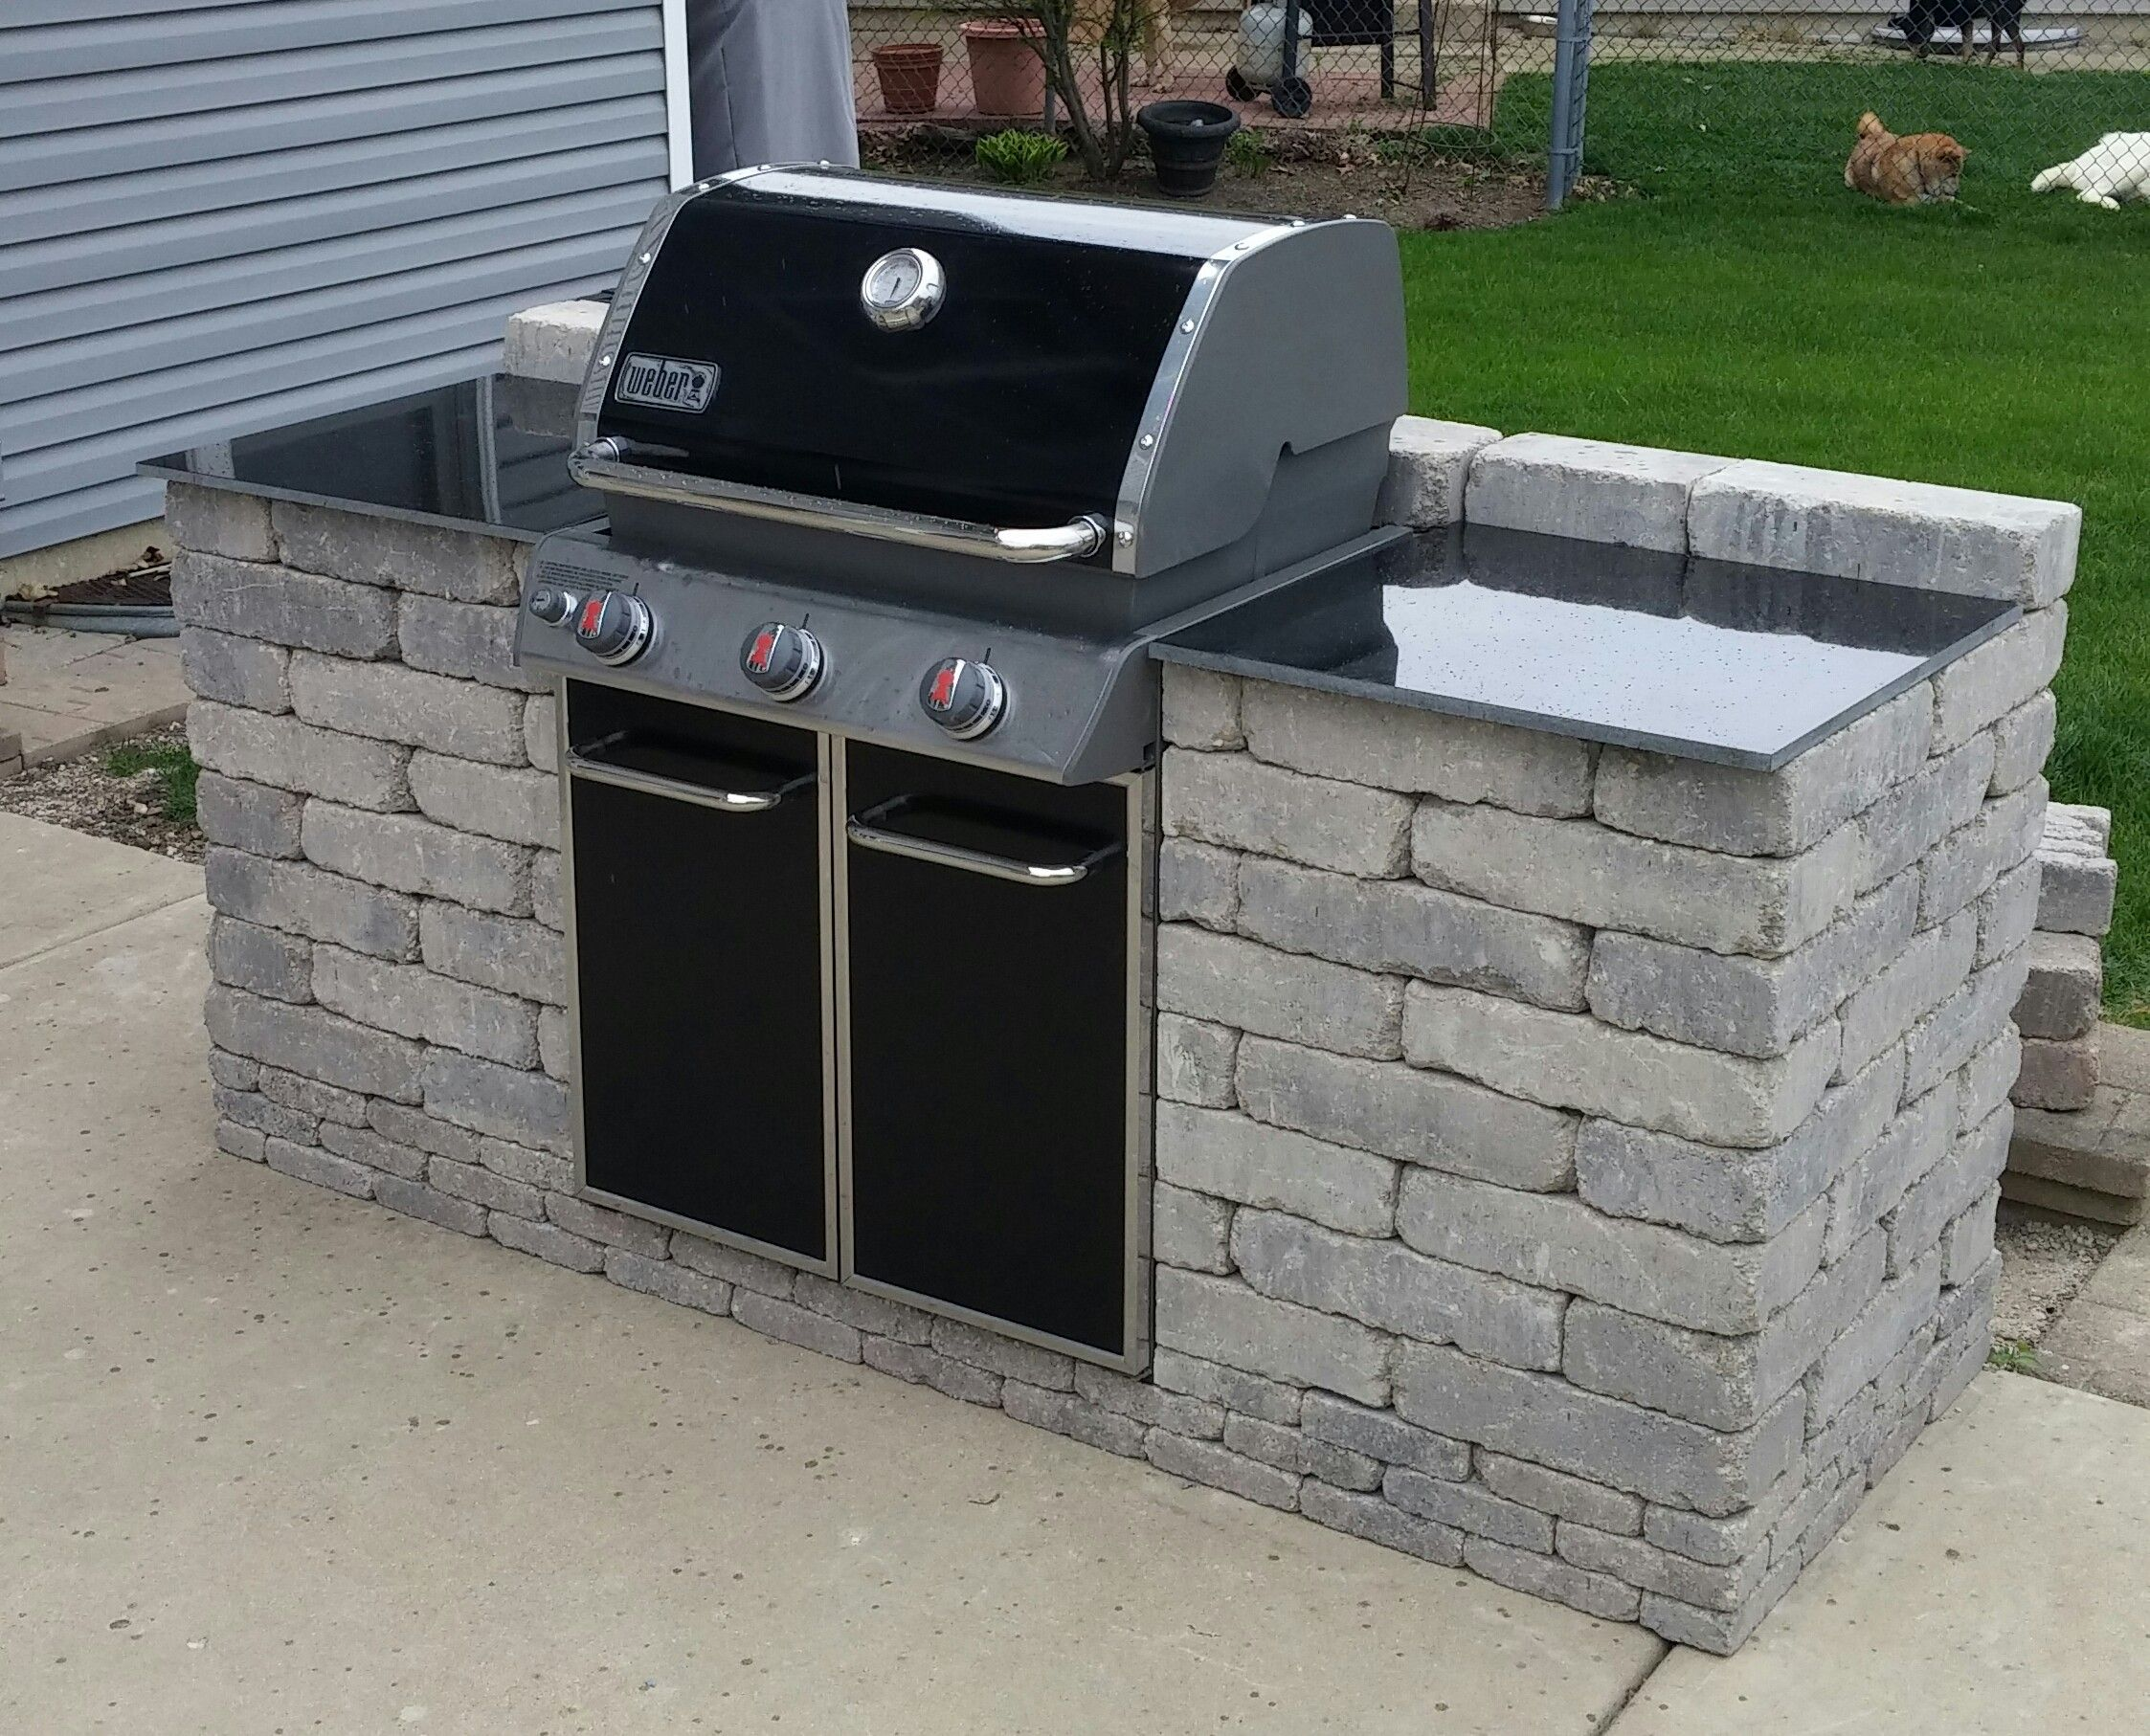 Barbeque grill enclosure projects to try pinterest for Outdoor barbecue grill designs